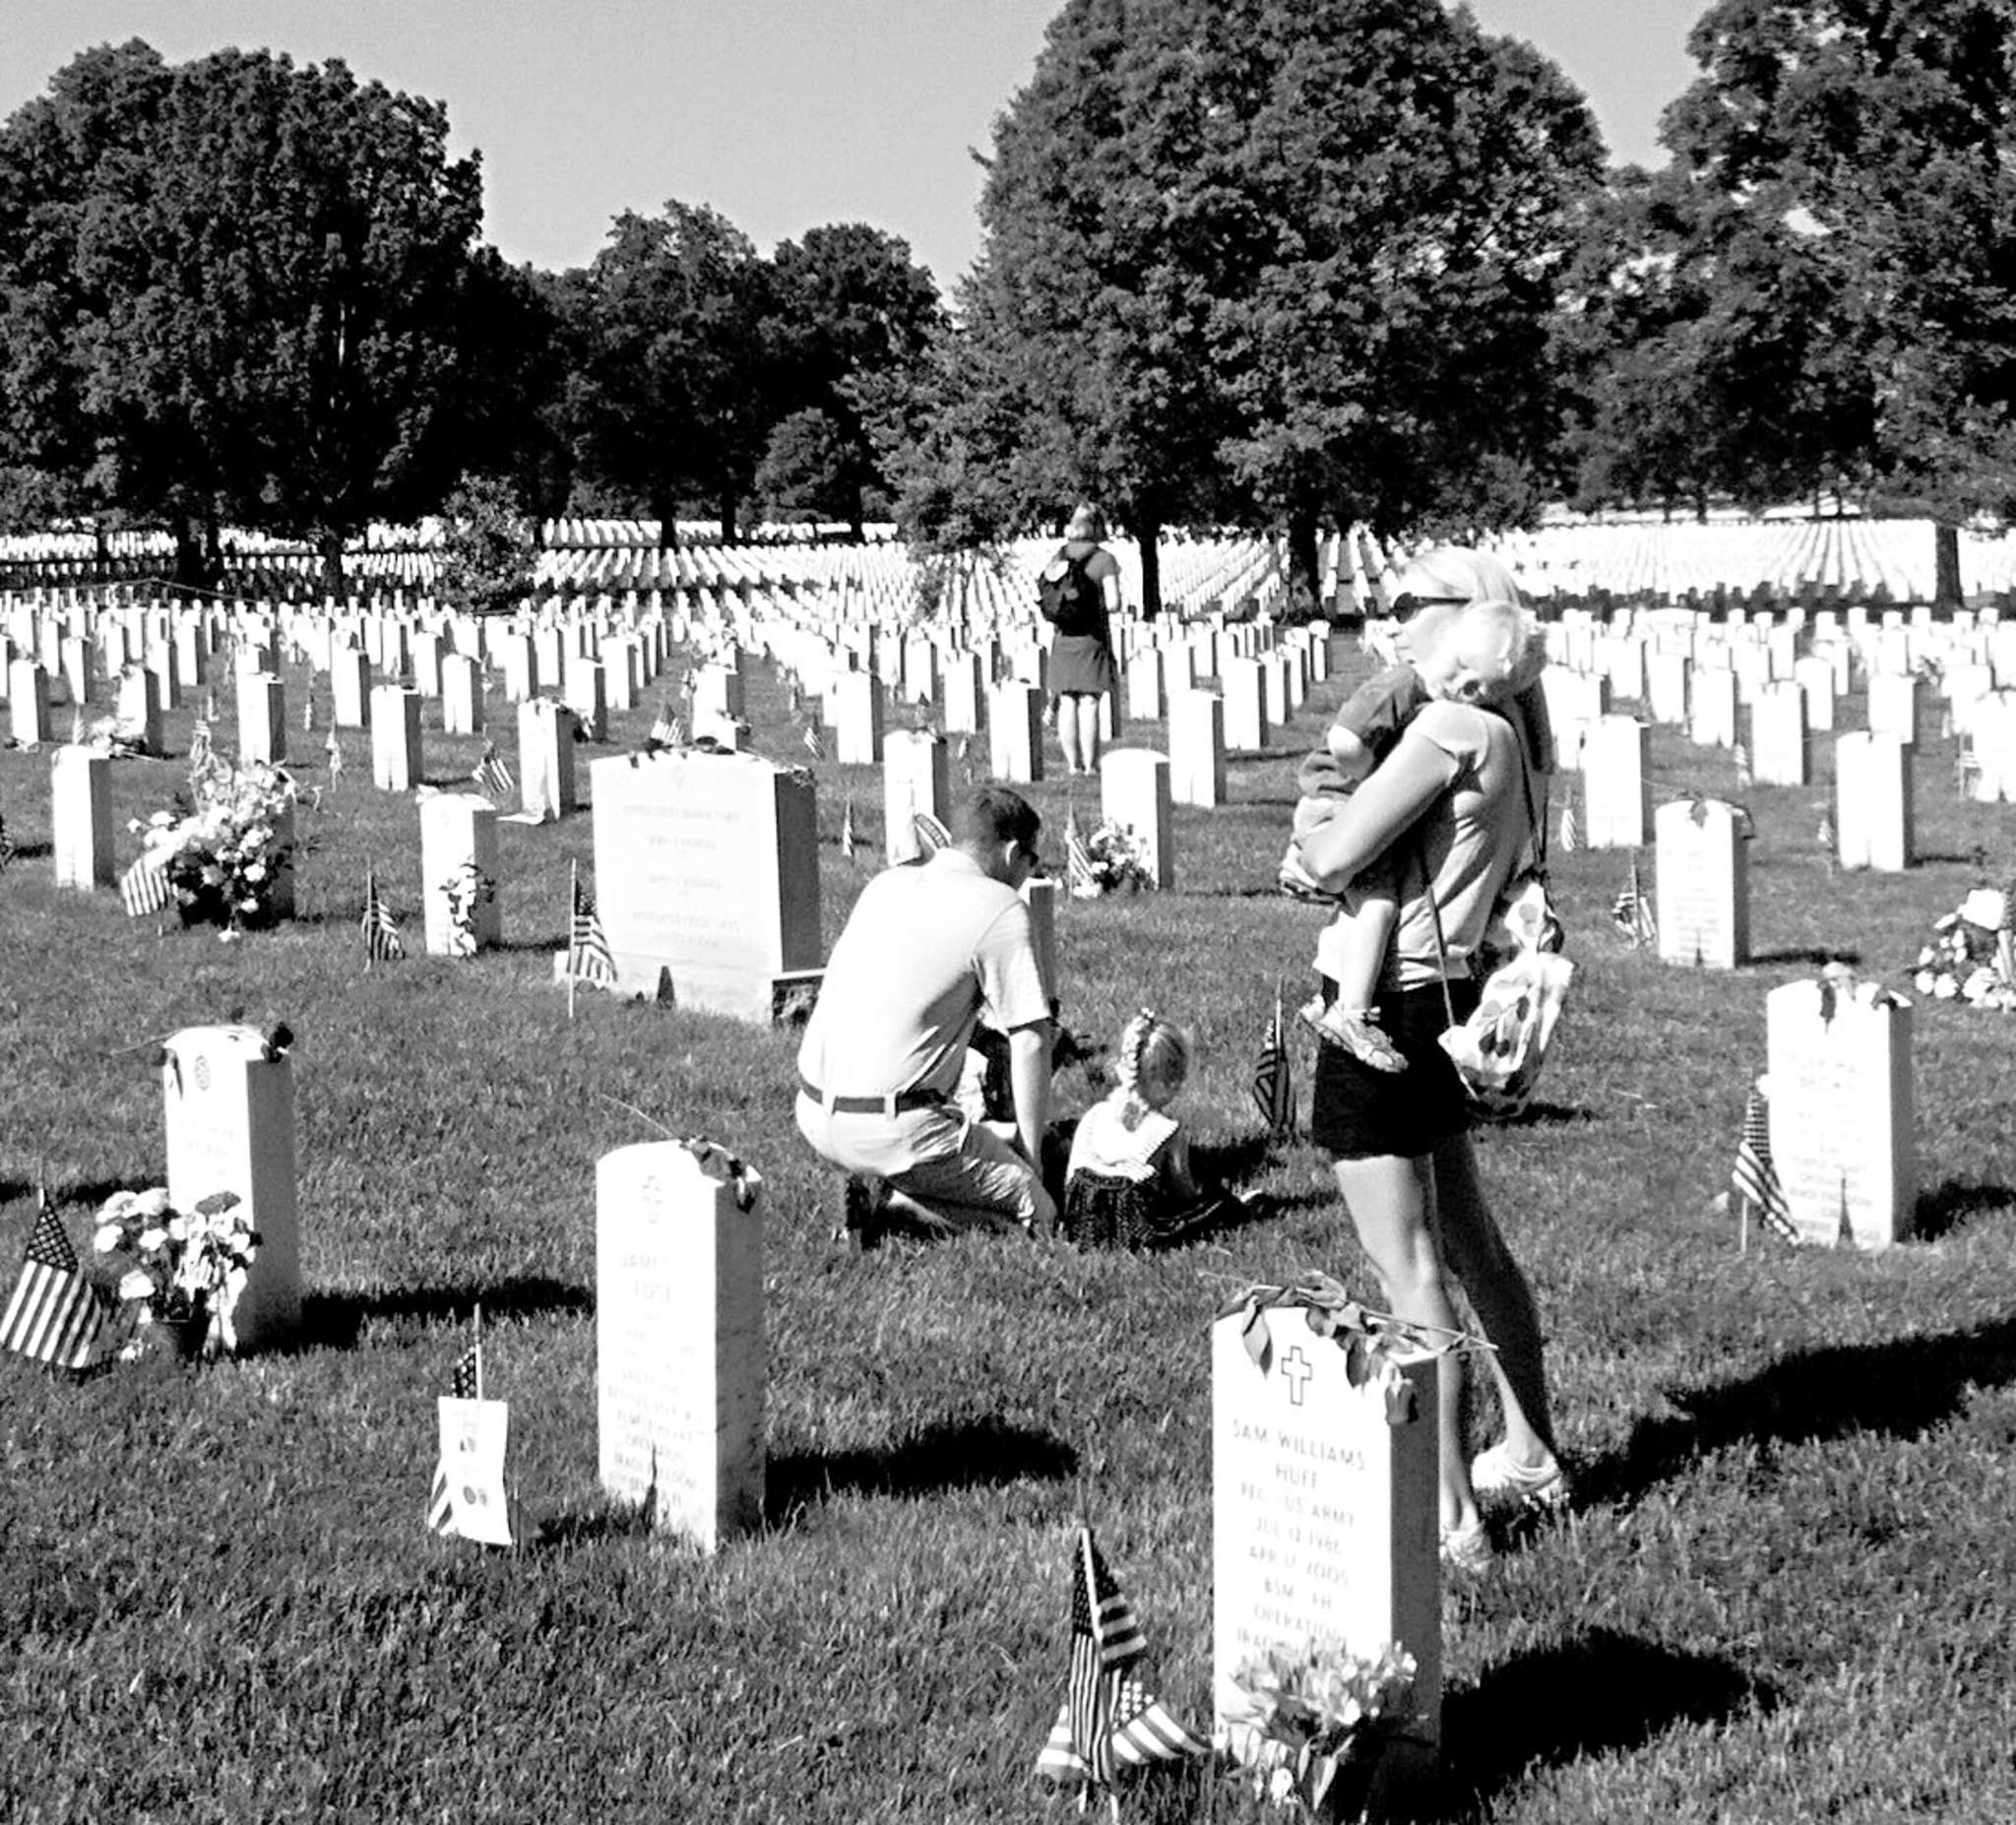 A family pays its respects to a fallen Marine in Arlington National Cemetery´s Section 60, where heroes from the currents wars are buried.